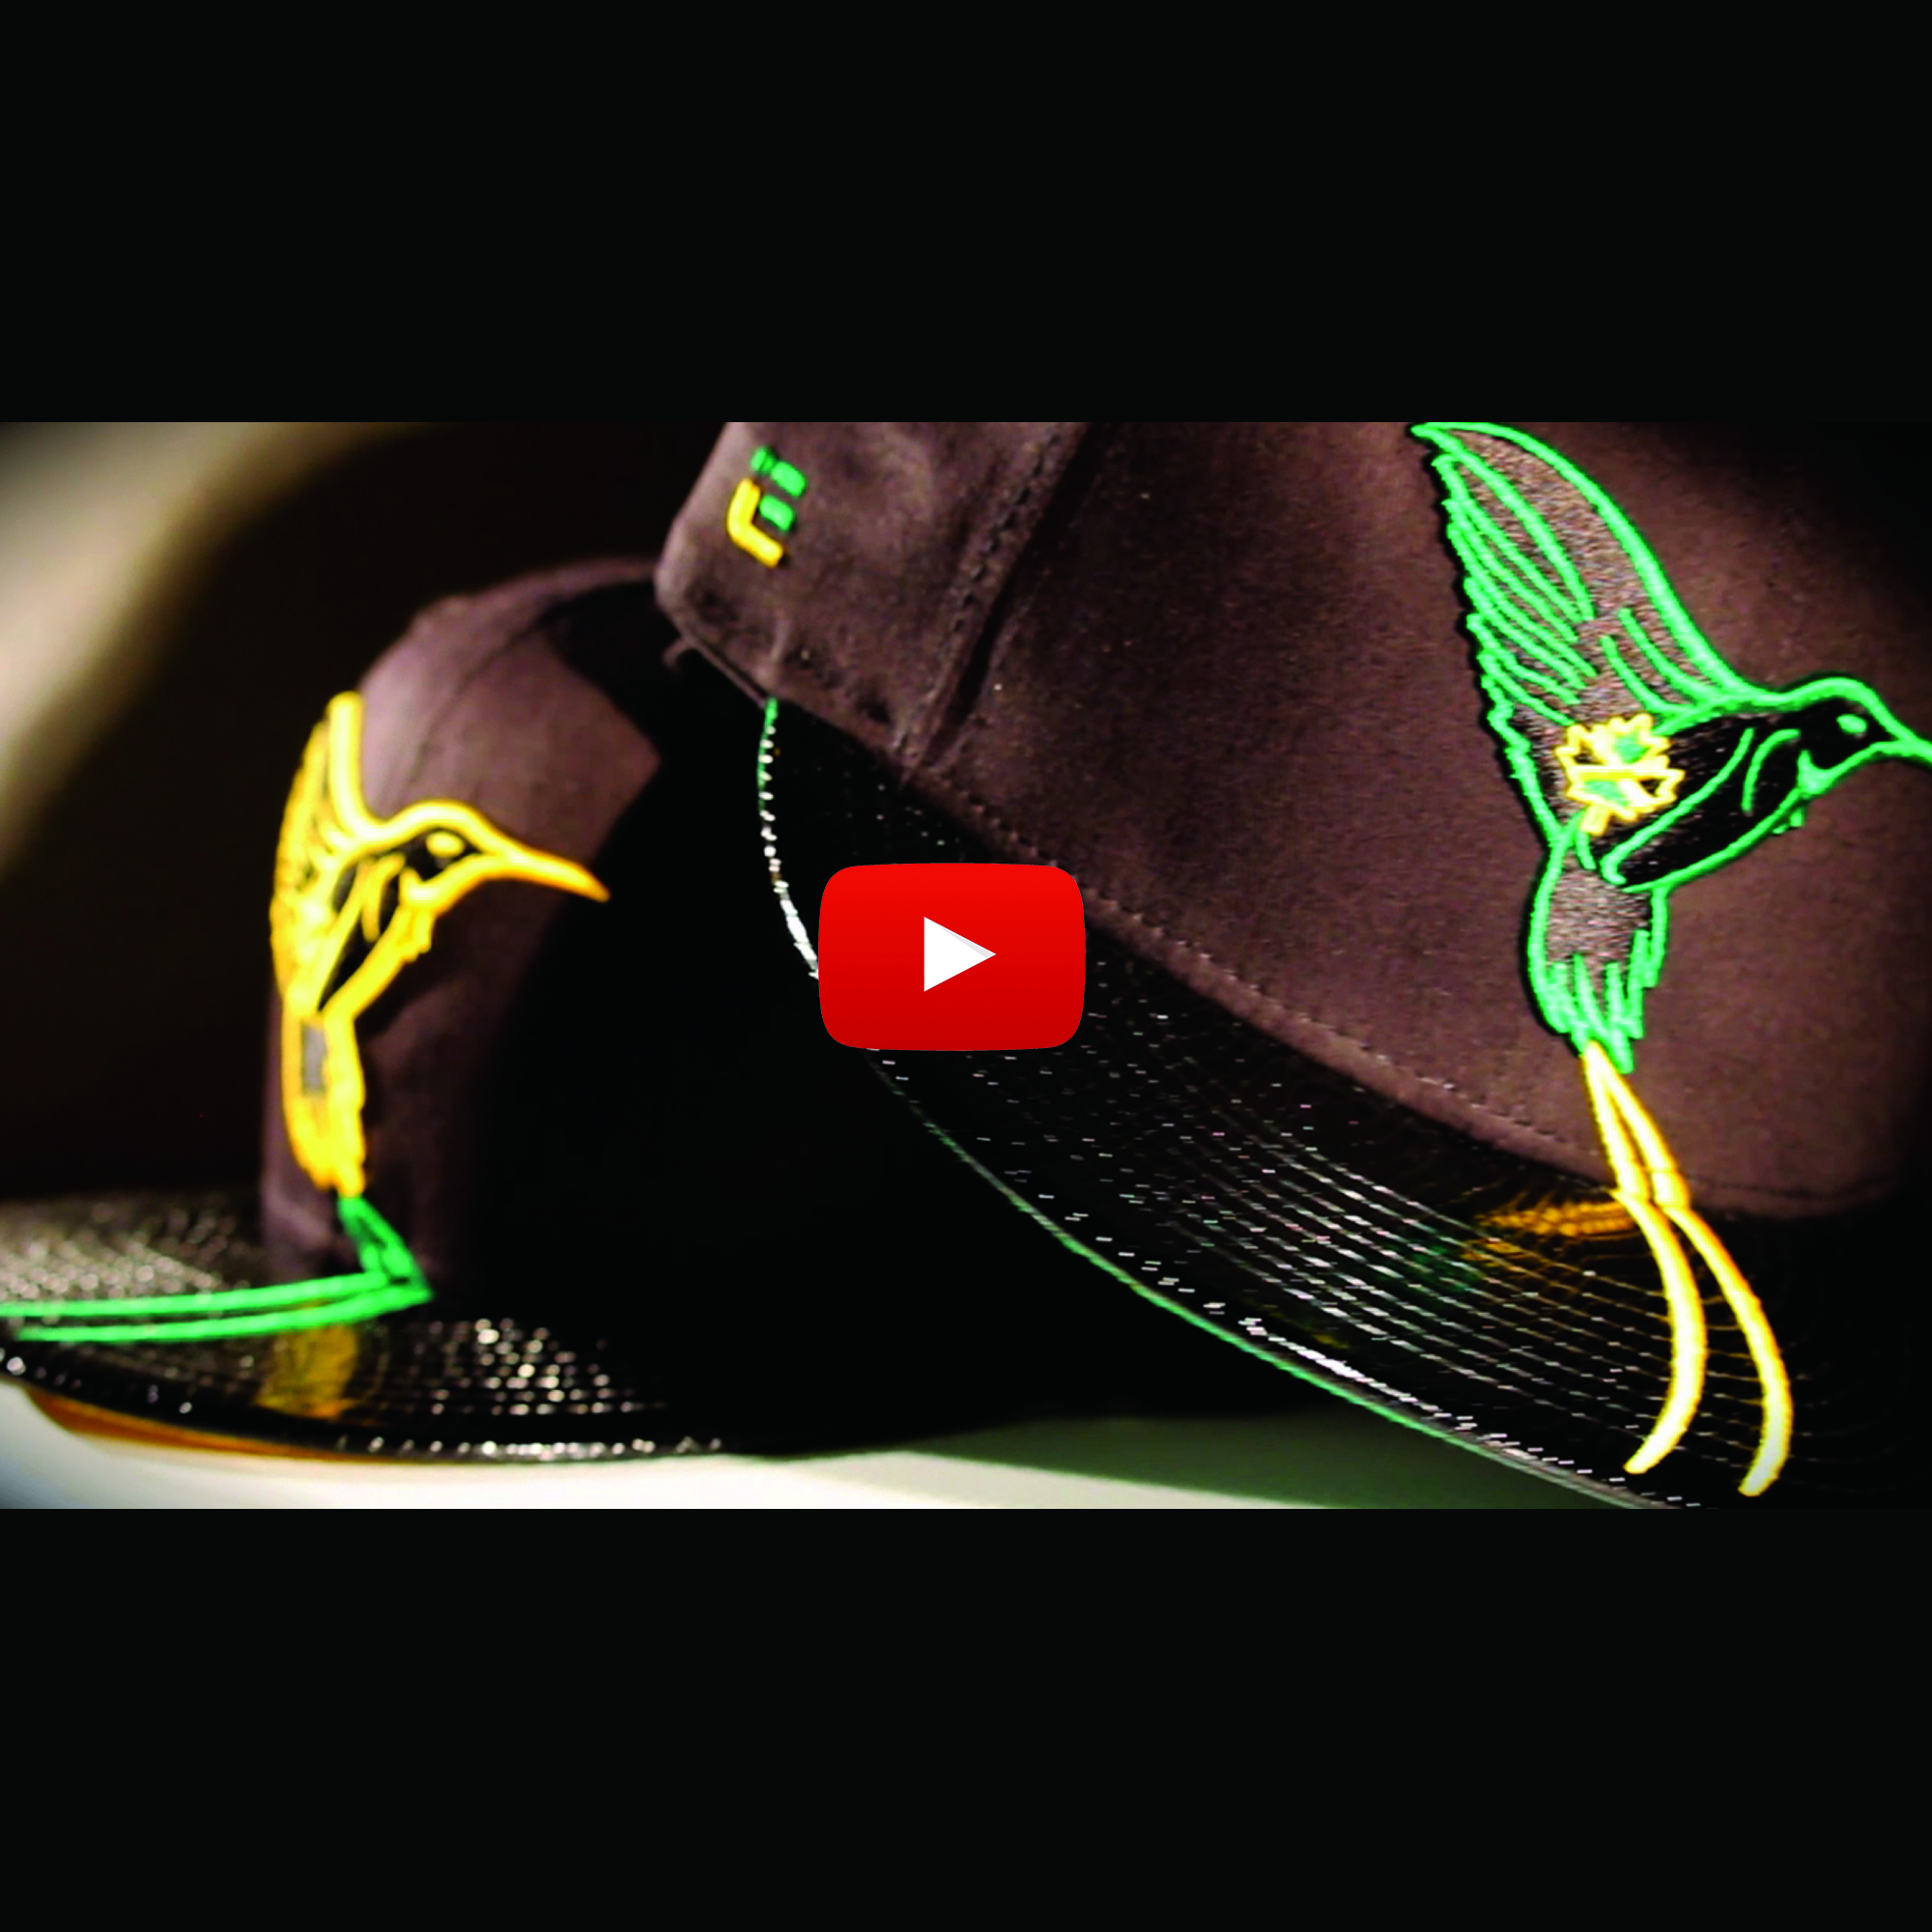 The Cap Guys - Inspired Exclusives - The Doctor Bird - Commercial Teaser